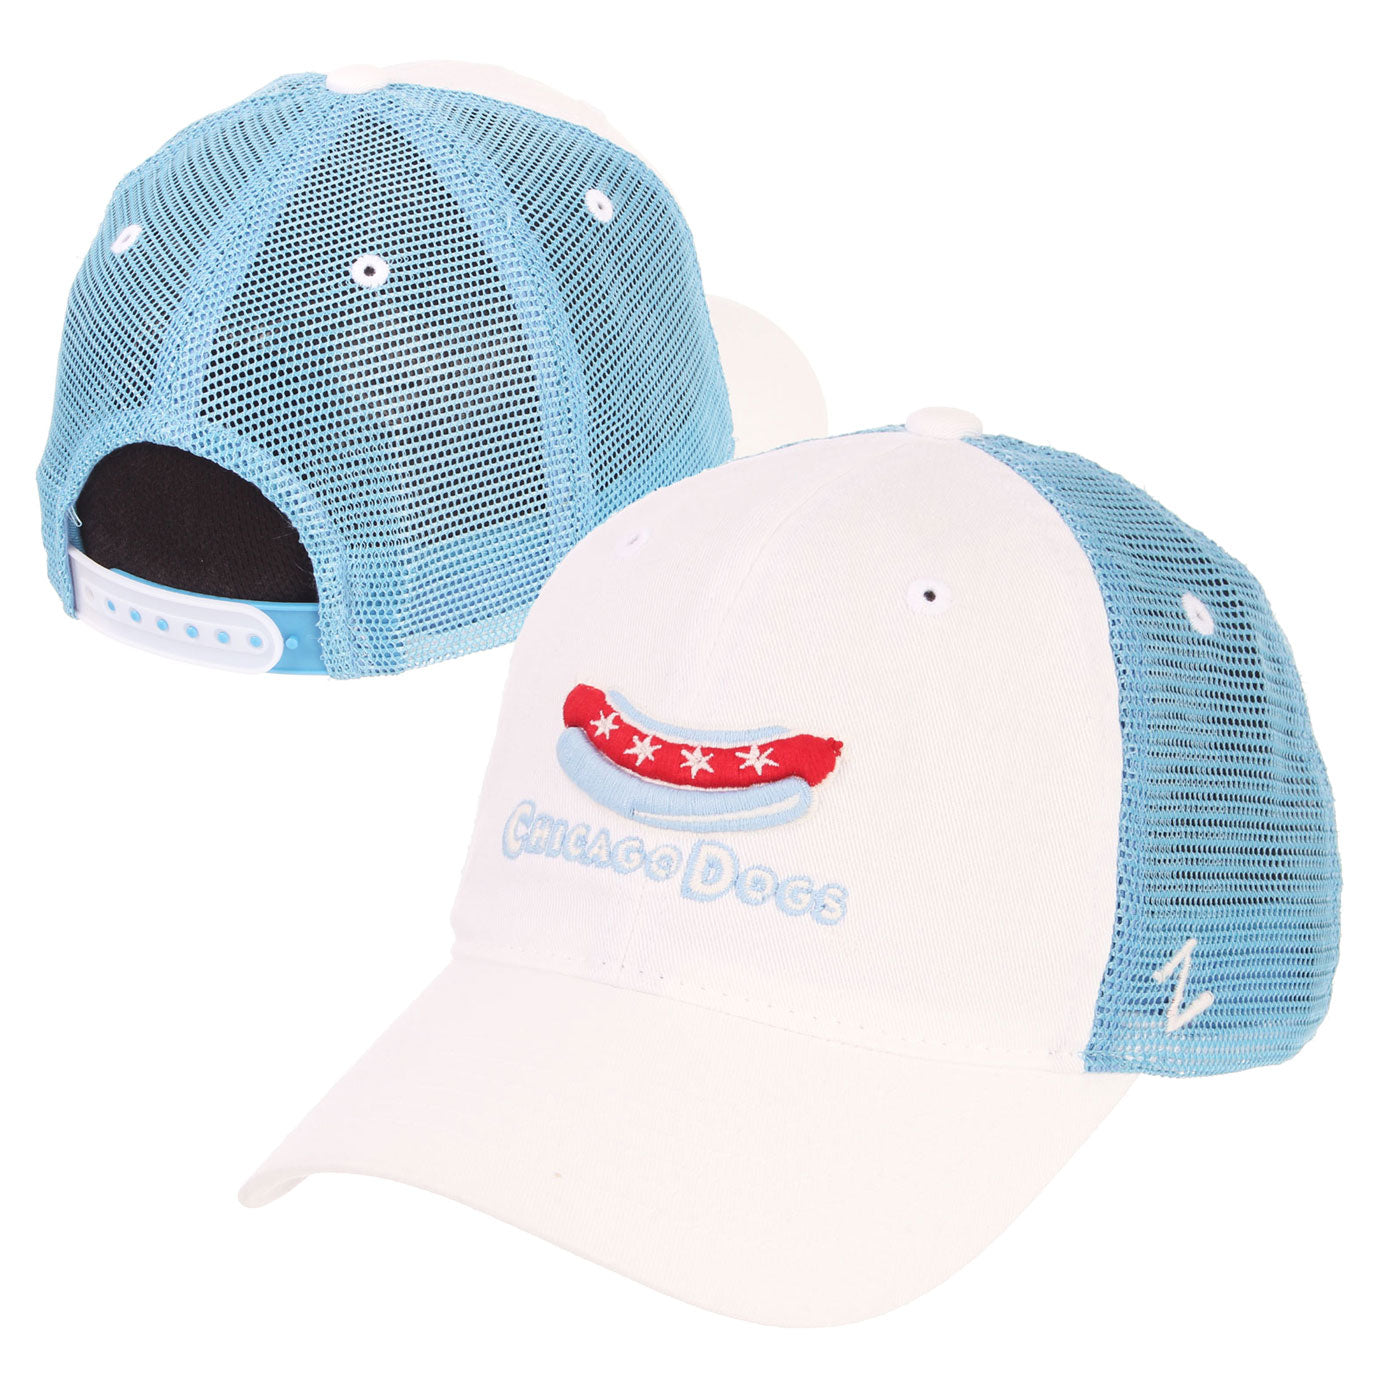 Chicago Dogs Zephyr Secondary Logo Mesh Trucker Snapback Hat - White/Light Blue